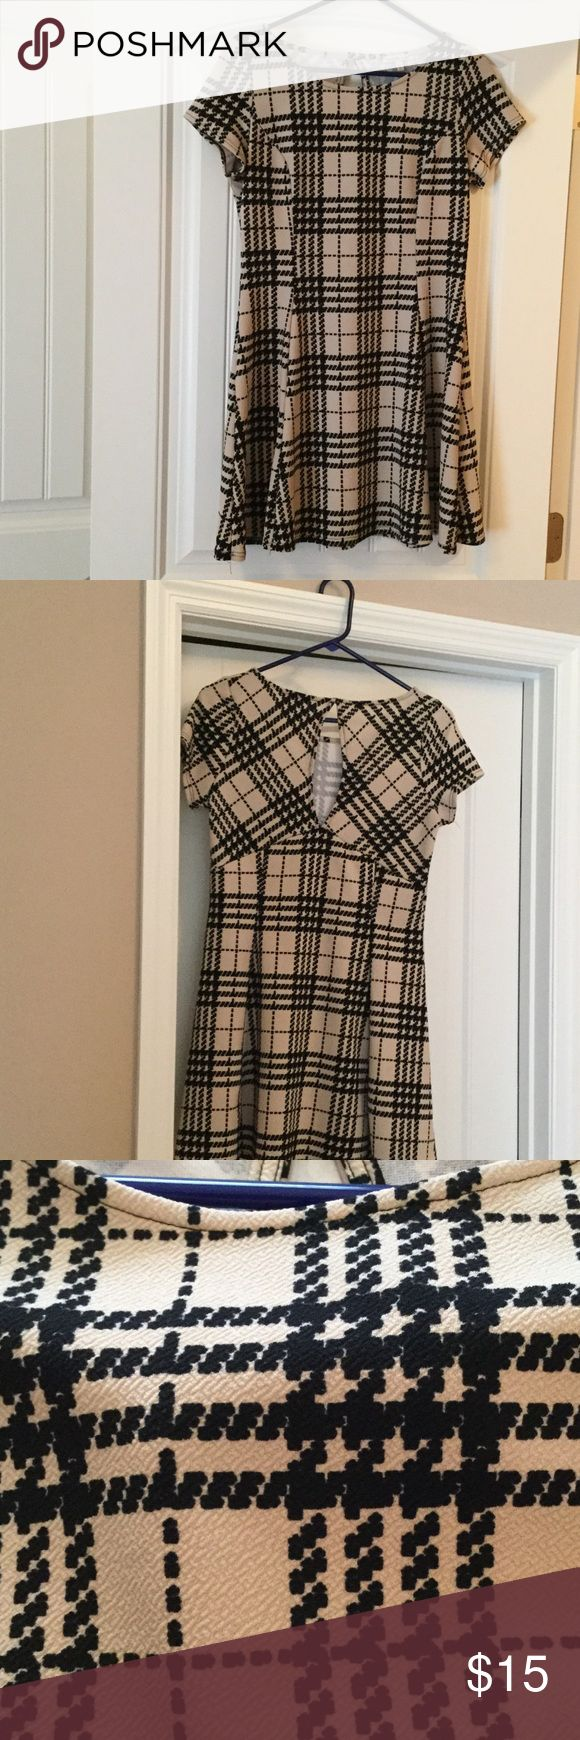 Charlotte Ruse dress size X large Cute black and cream colored dress with a keyhole back, size extra large Charlotte Russe Dresses